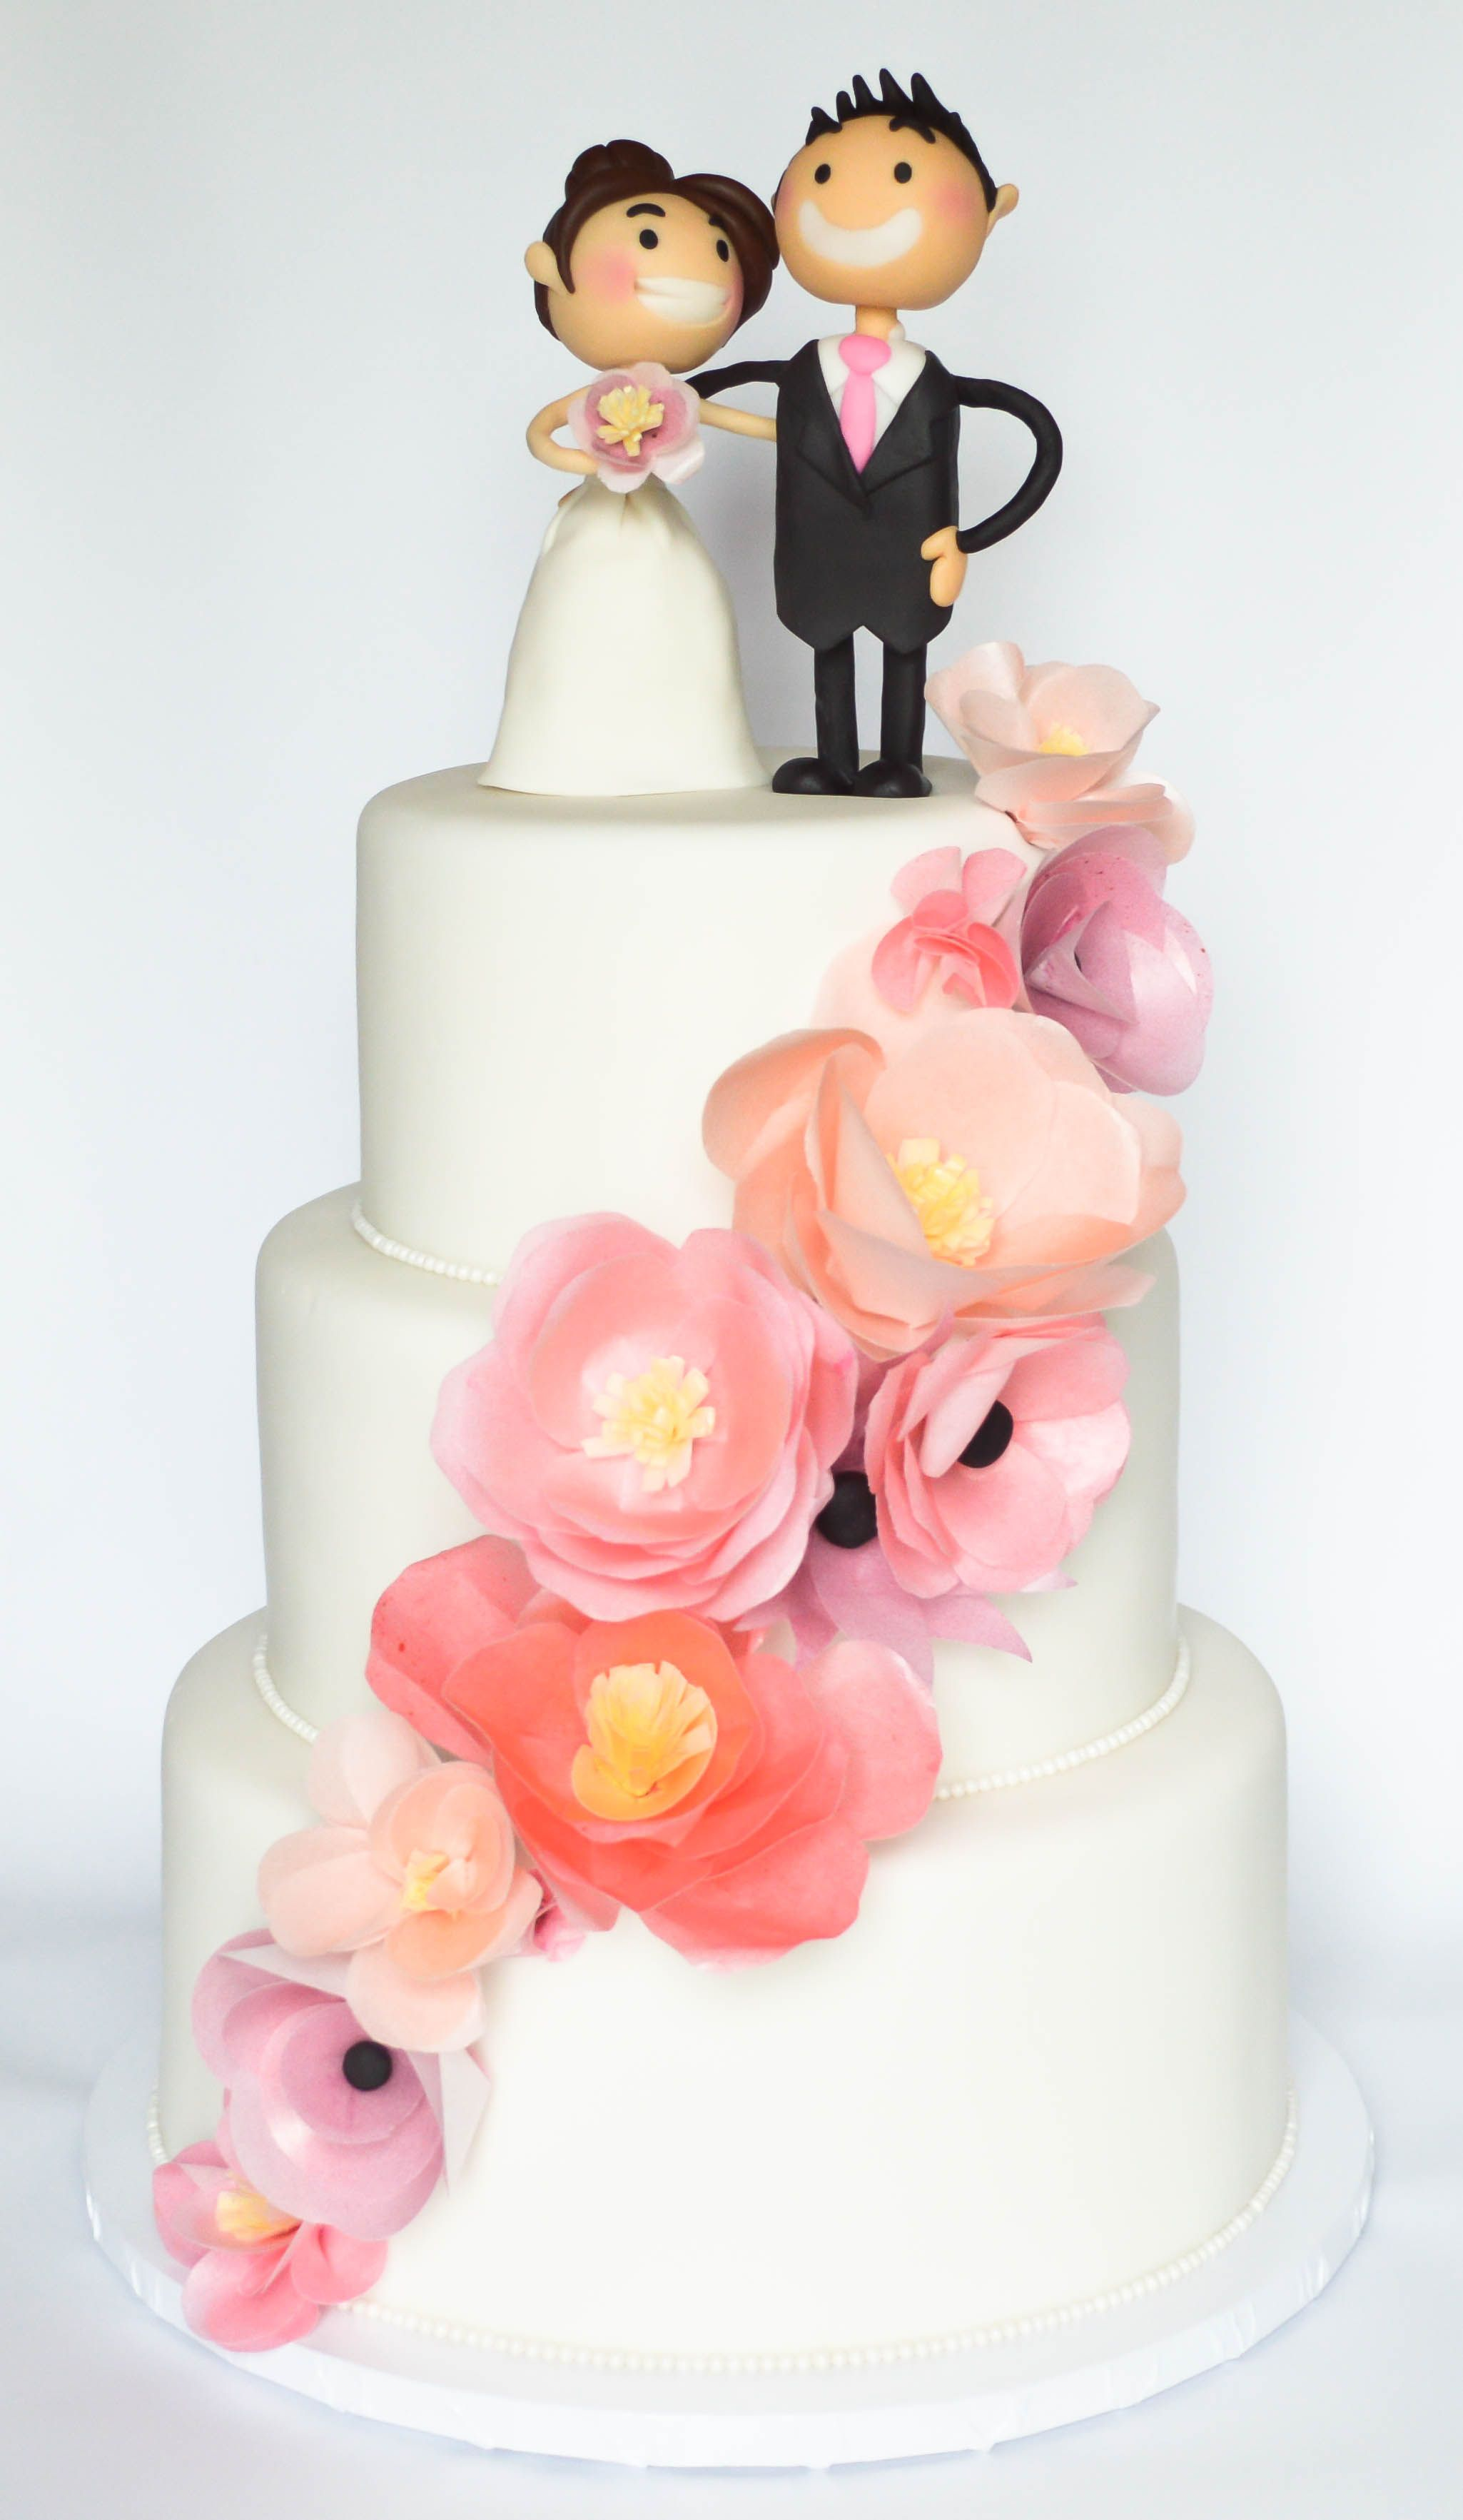 wafer paper flowers wedding cake with custom fondant bride and groom ...